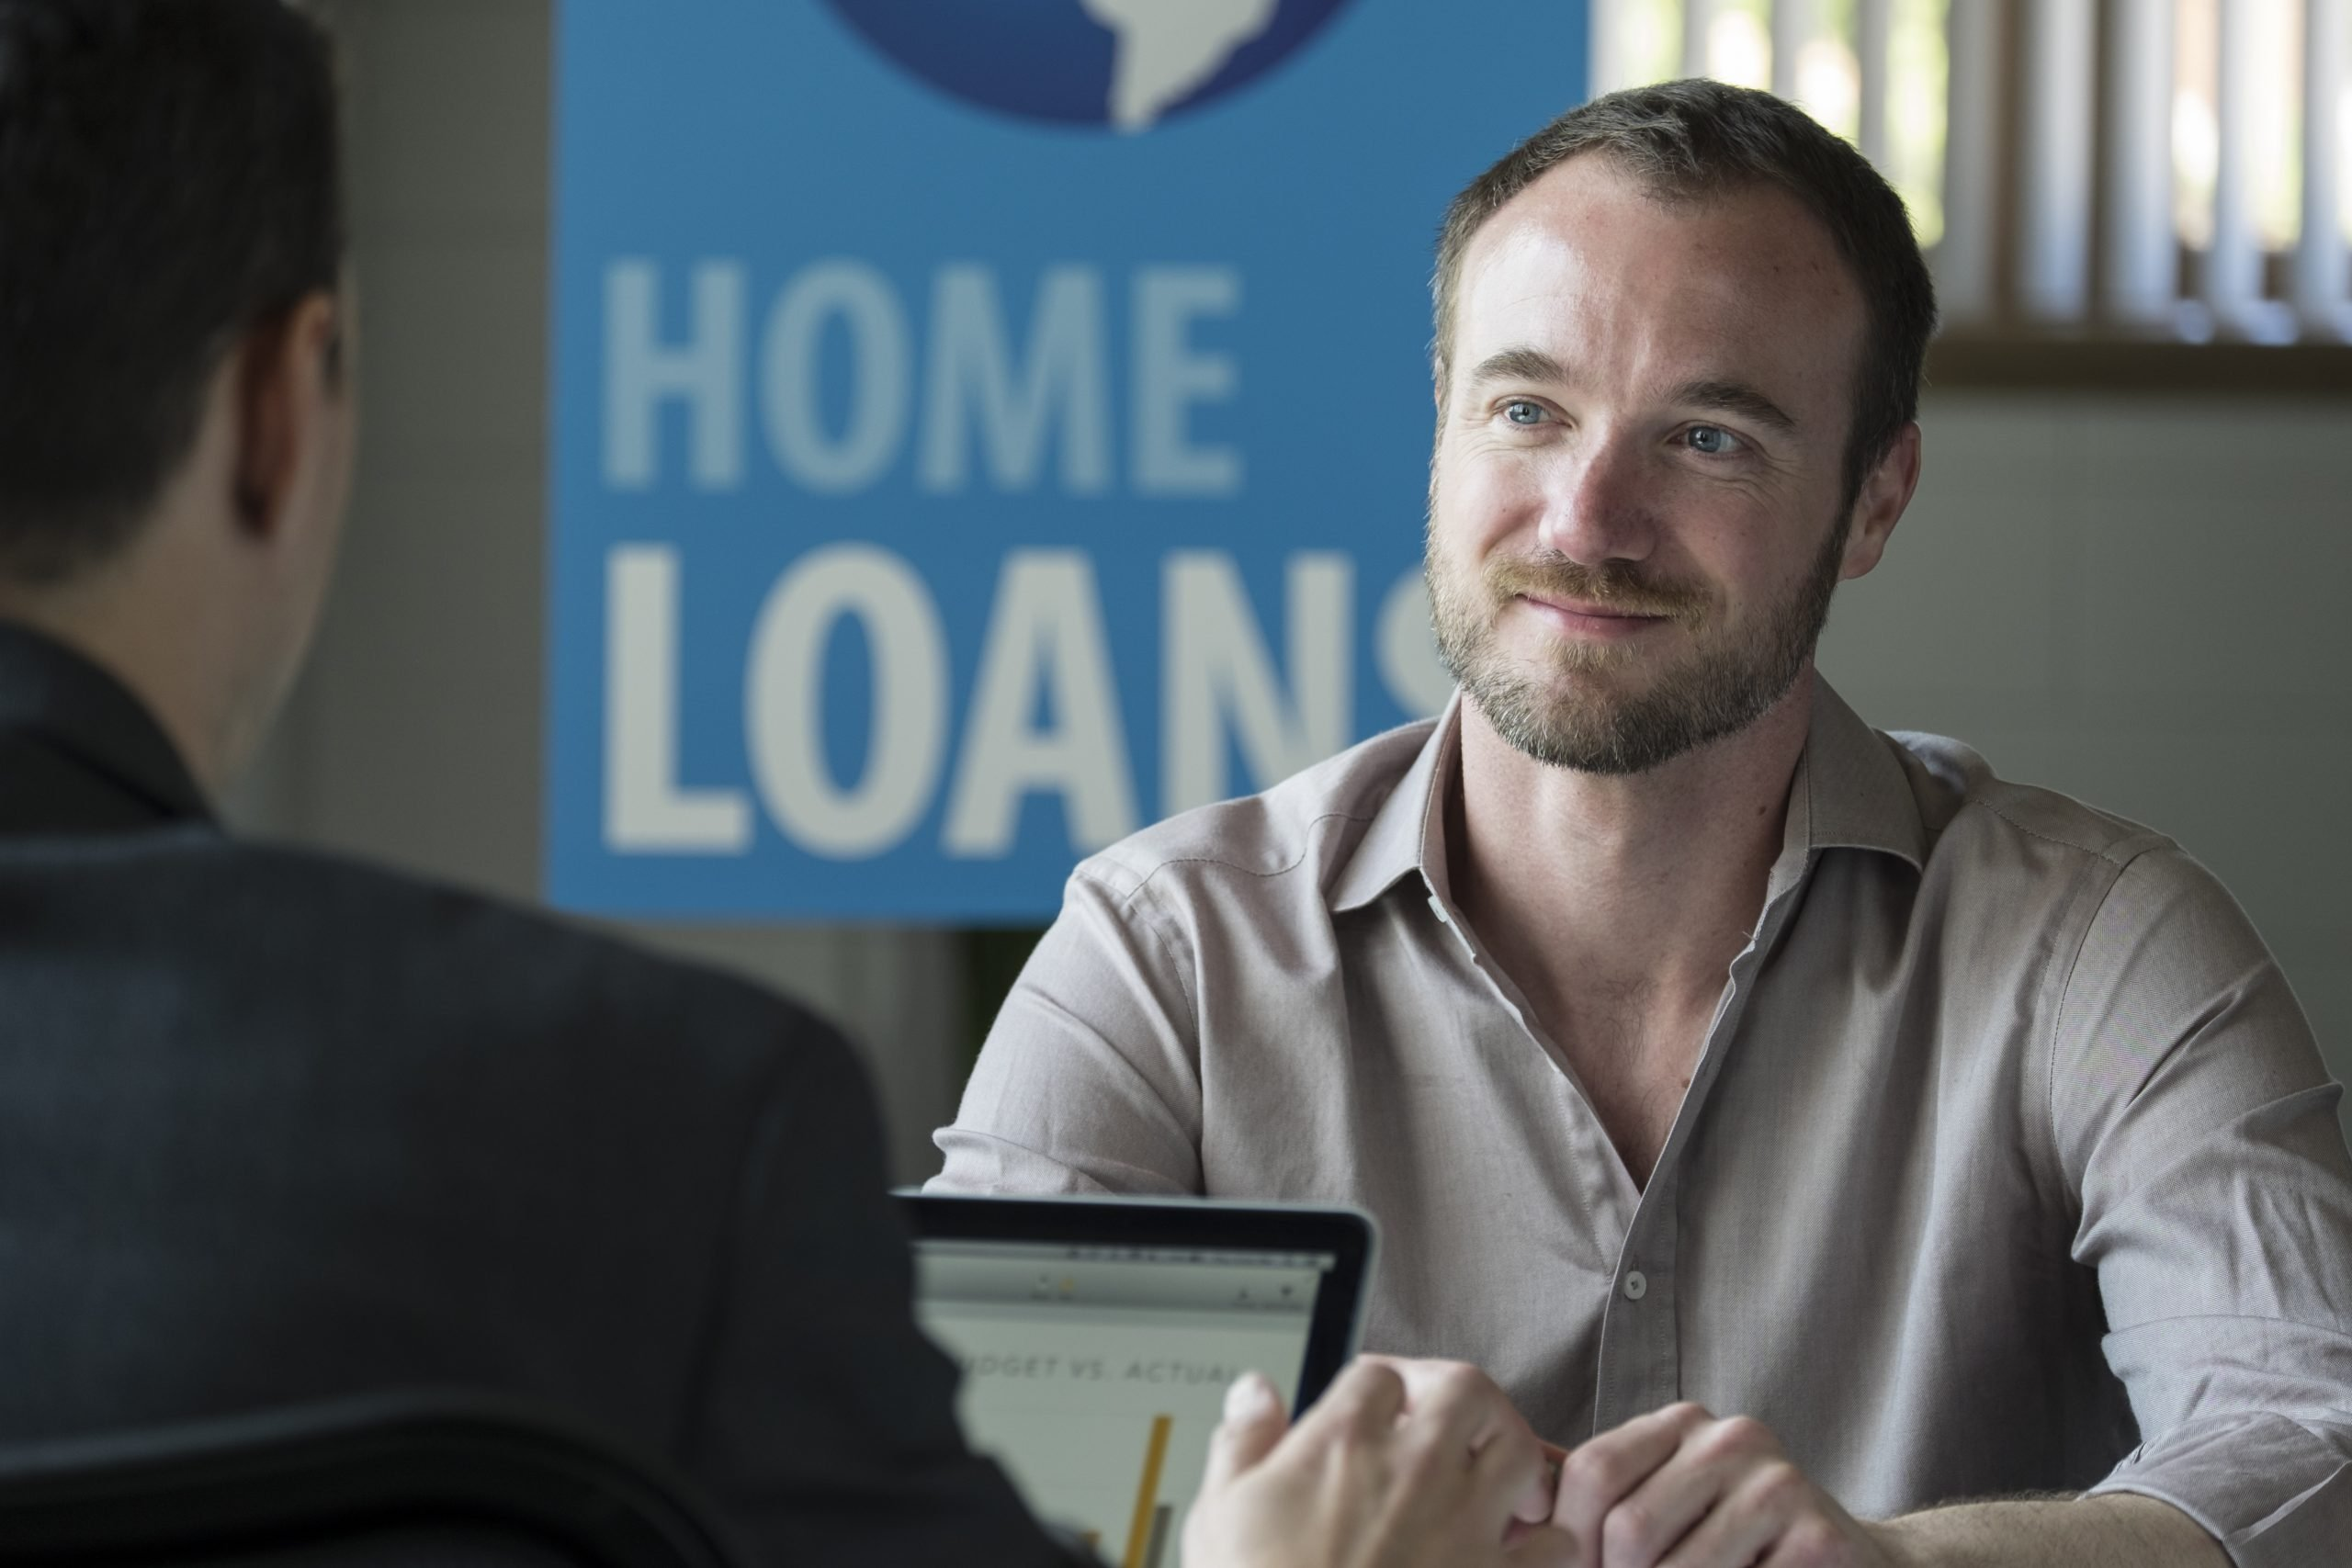 male in a home loans office representing help for homeowners through FHA options